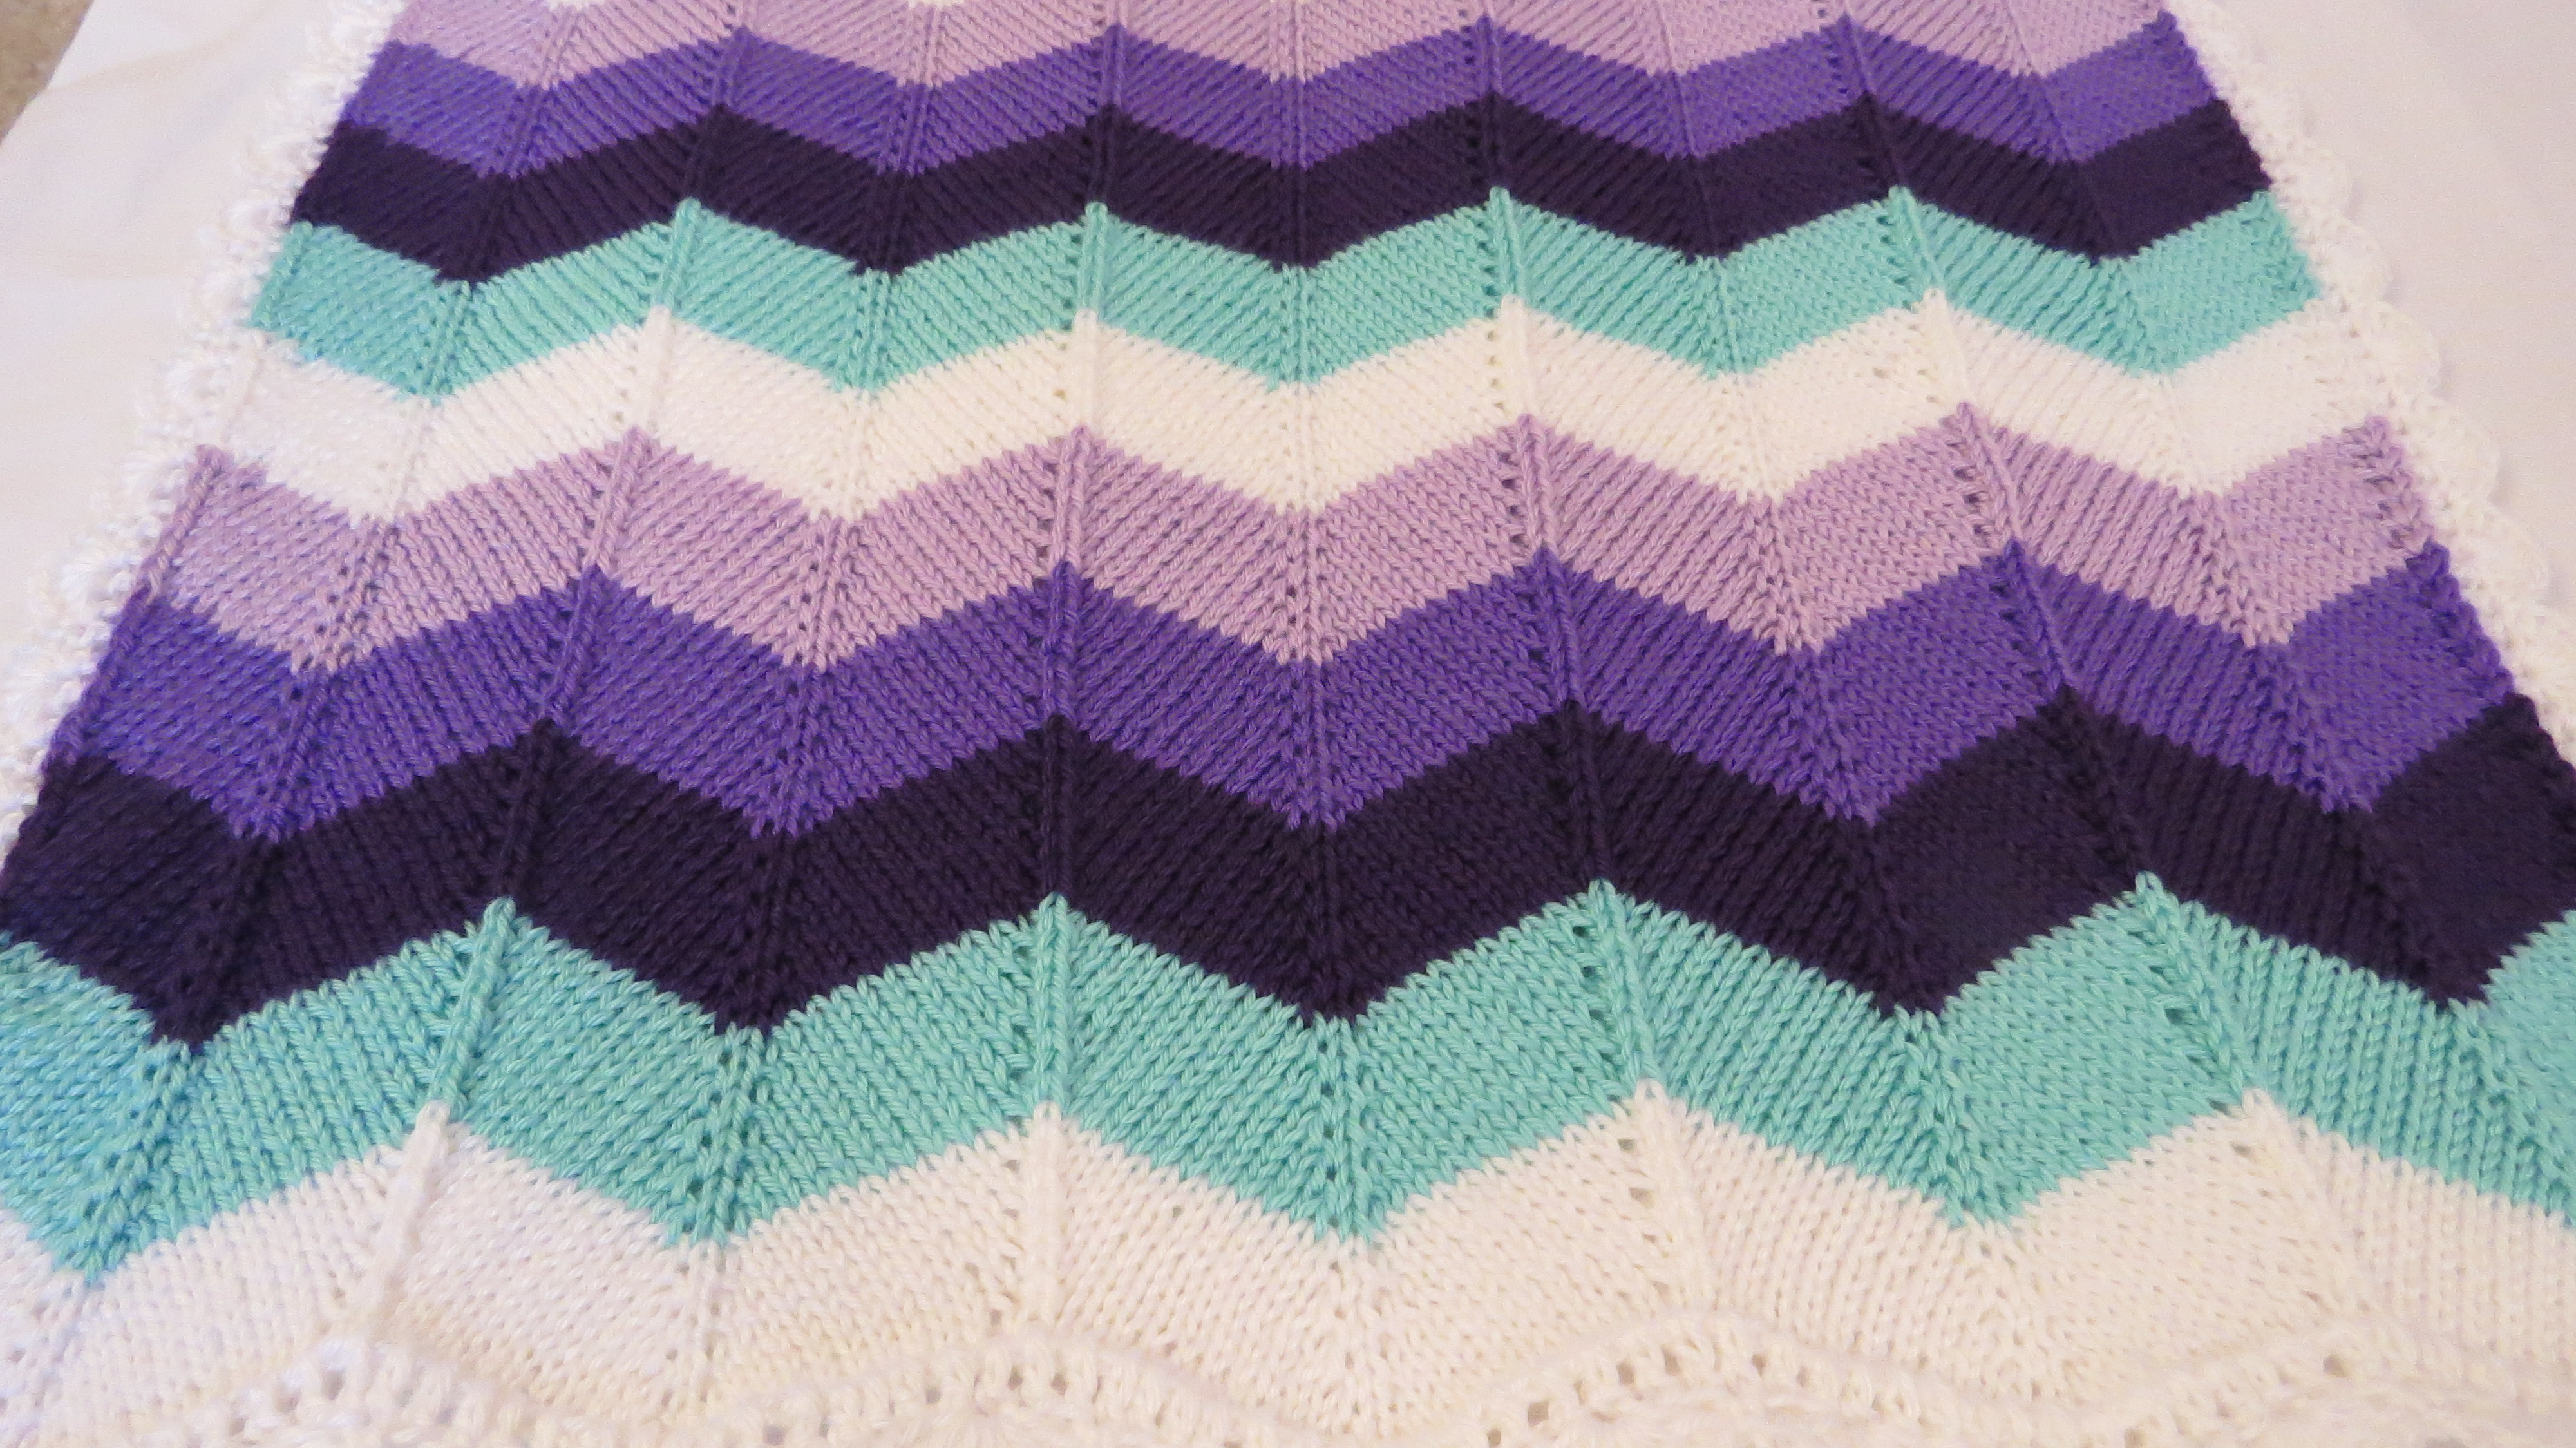 Chevron Baby Blanket Elegant Knitted Chevron – A Nerdy Crocheter Of Attractive 49 Pics Chevron Baby Blanket